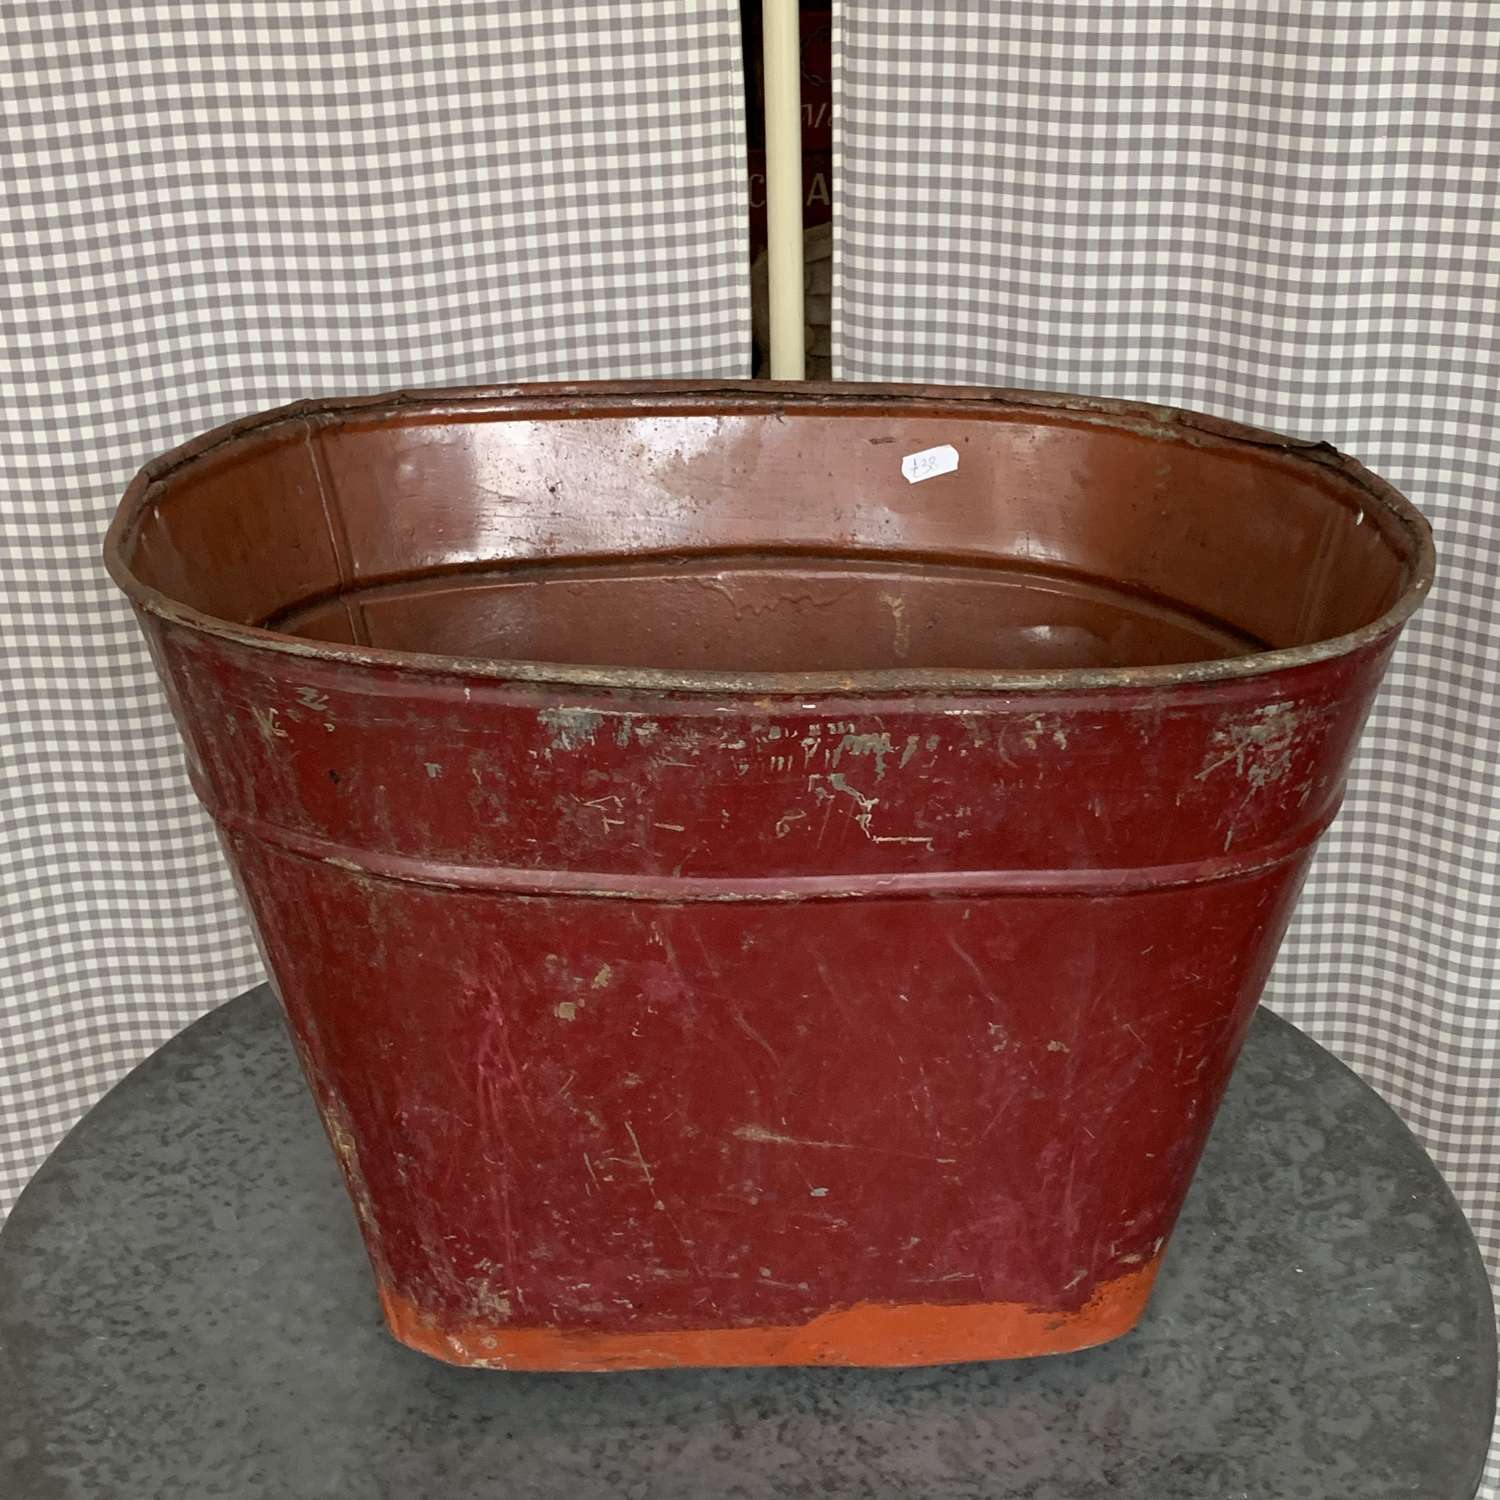 Vintage red painted planter